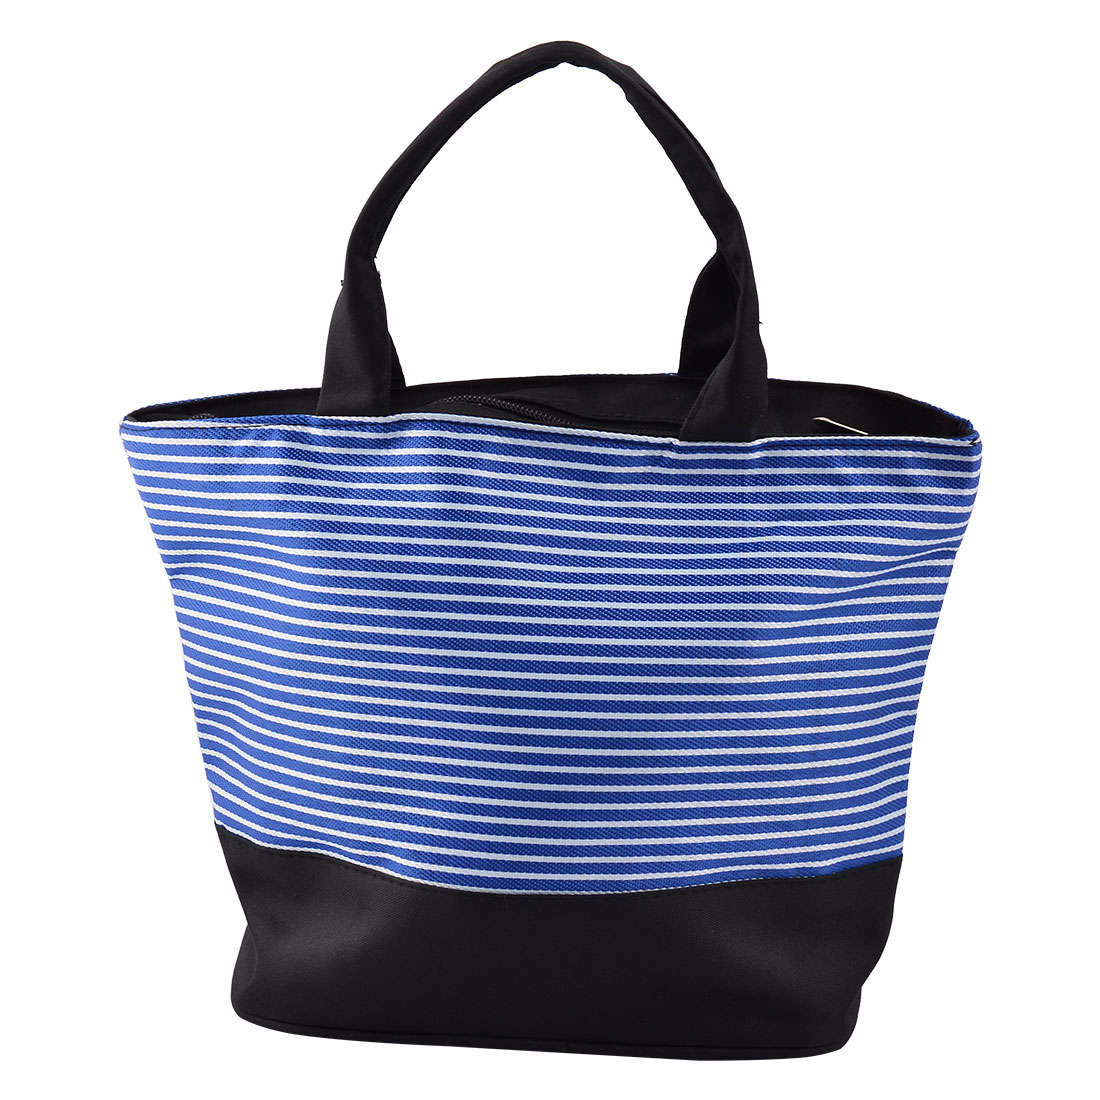 Picnic Oxford Fabric Stripe Print Rectangle Shaped Lunch Cooler Tote Bag Blue